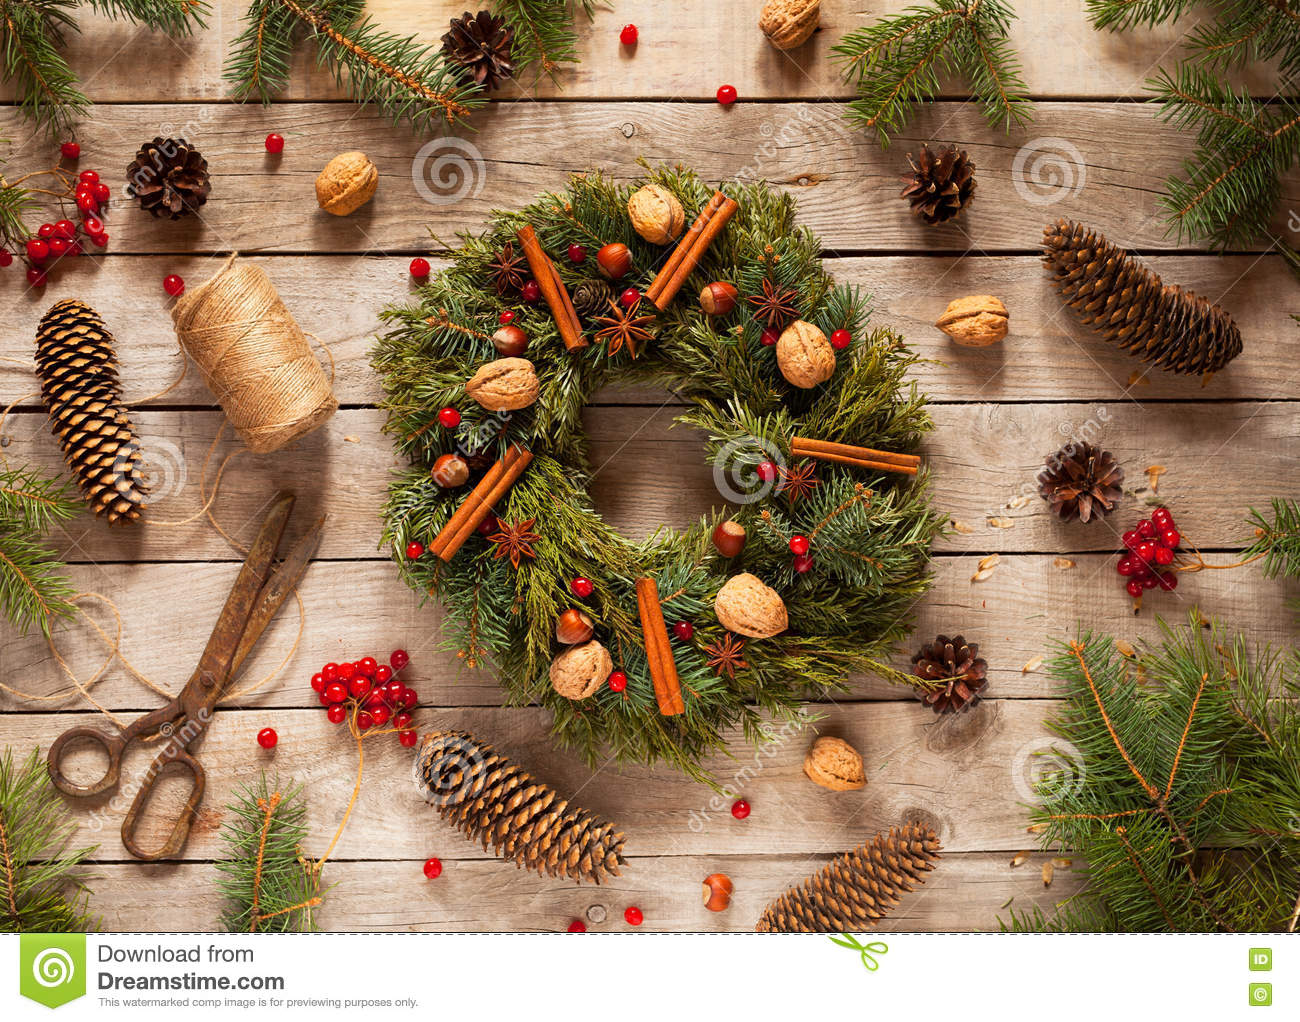 Advent Christmas wreath with natural decorations, pine cones spruce, nuts, candied fruit on wooden rustic background